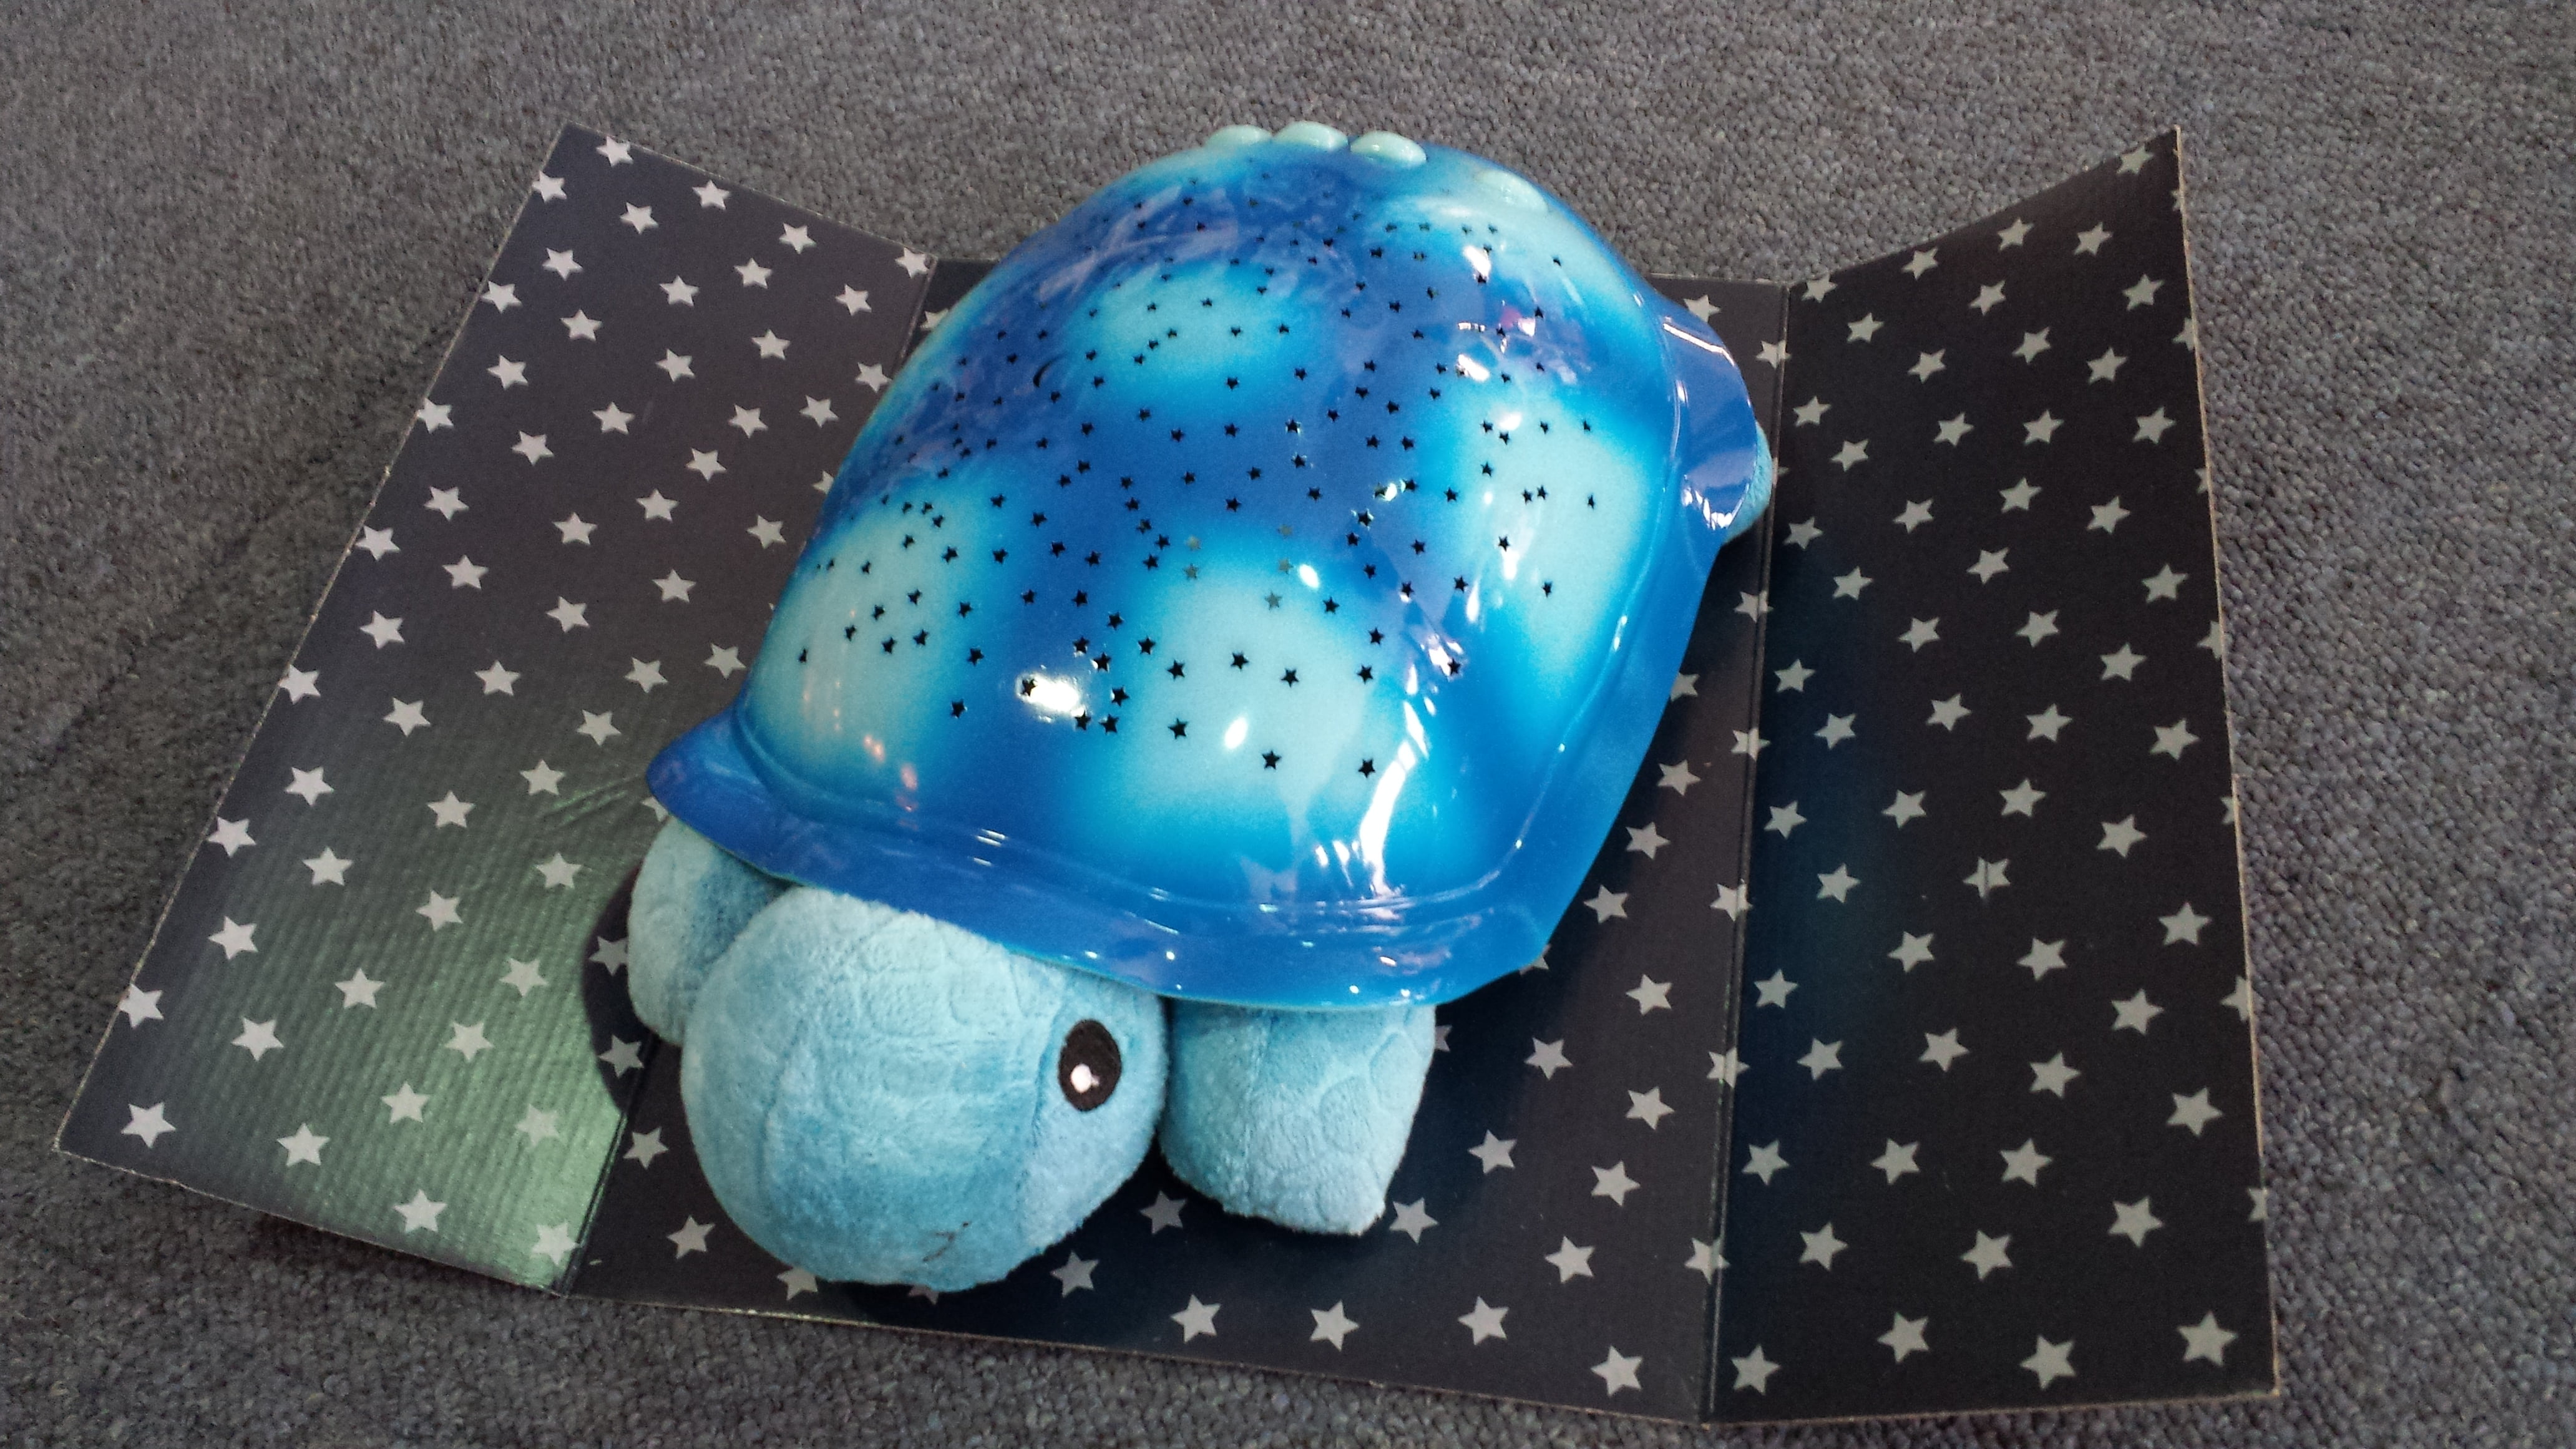 Twilight Turtle, sorteig de BabyShop Dénia